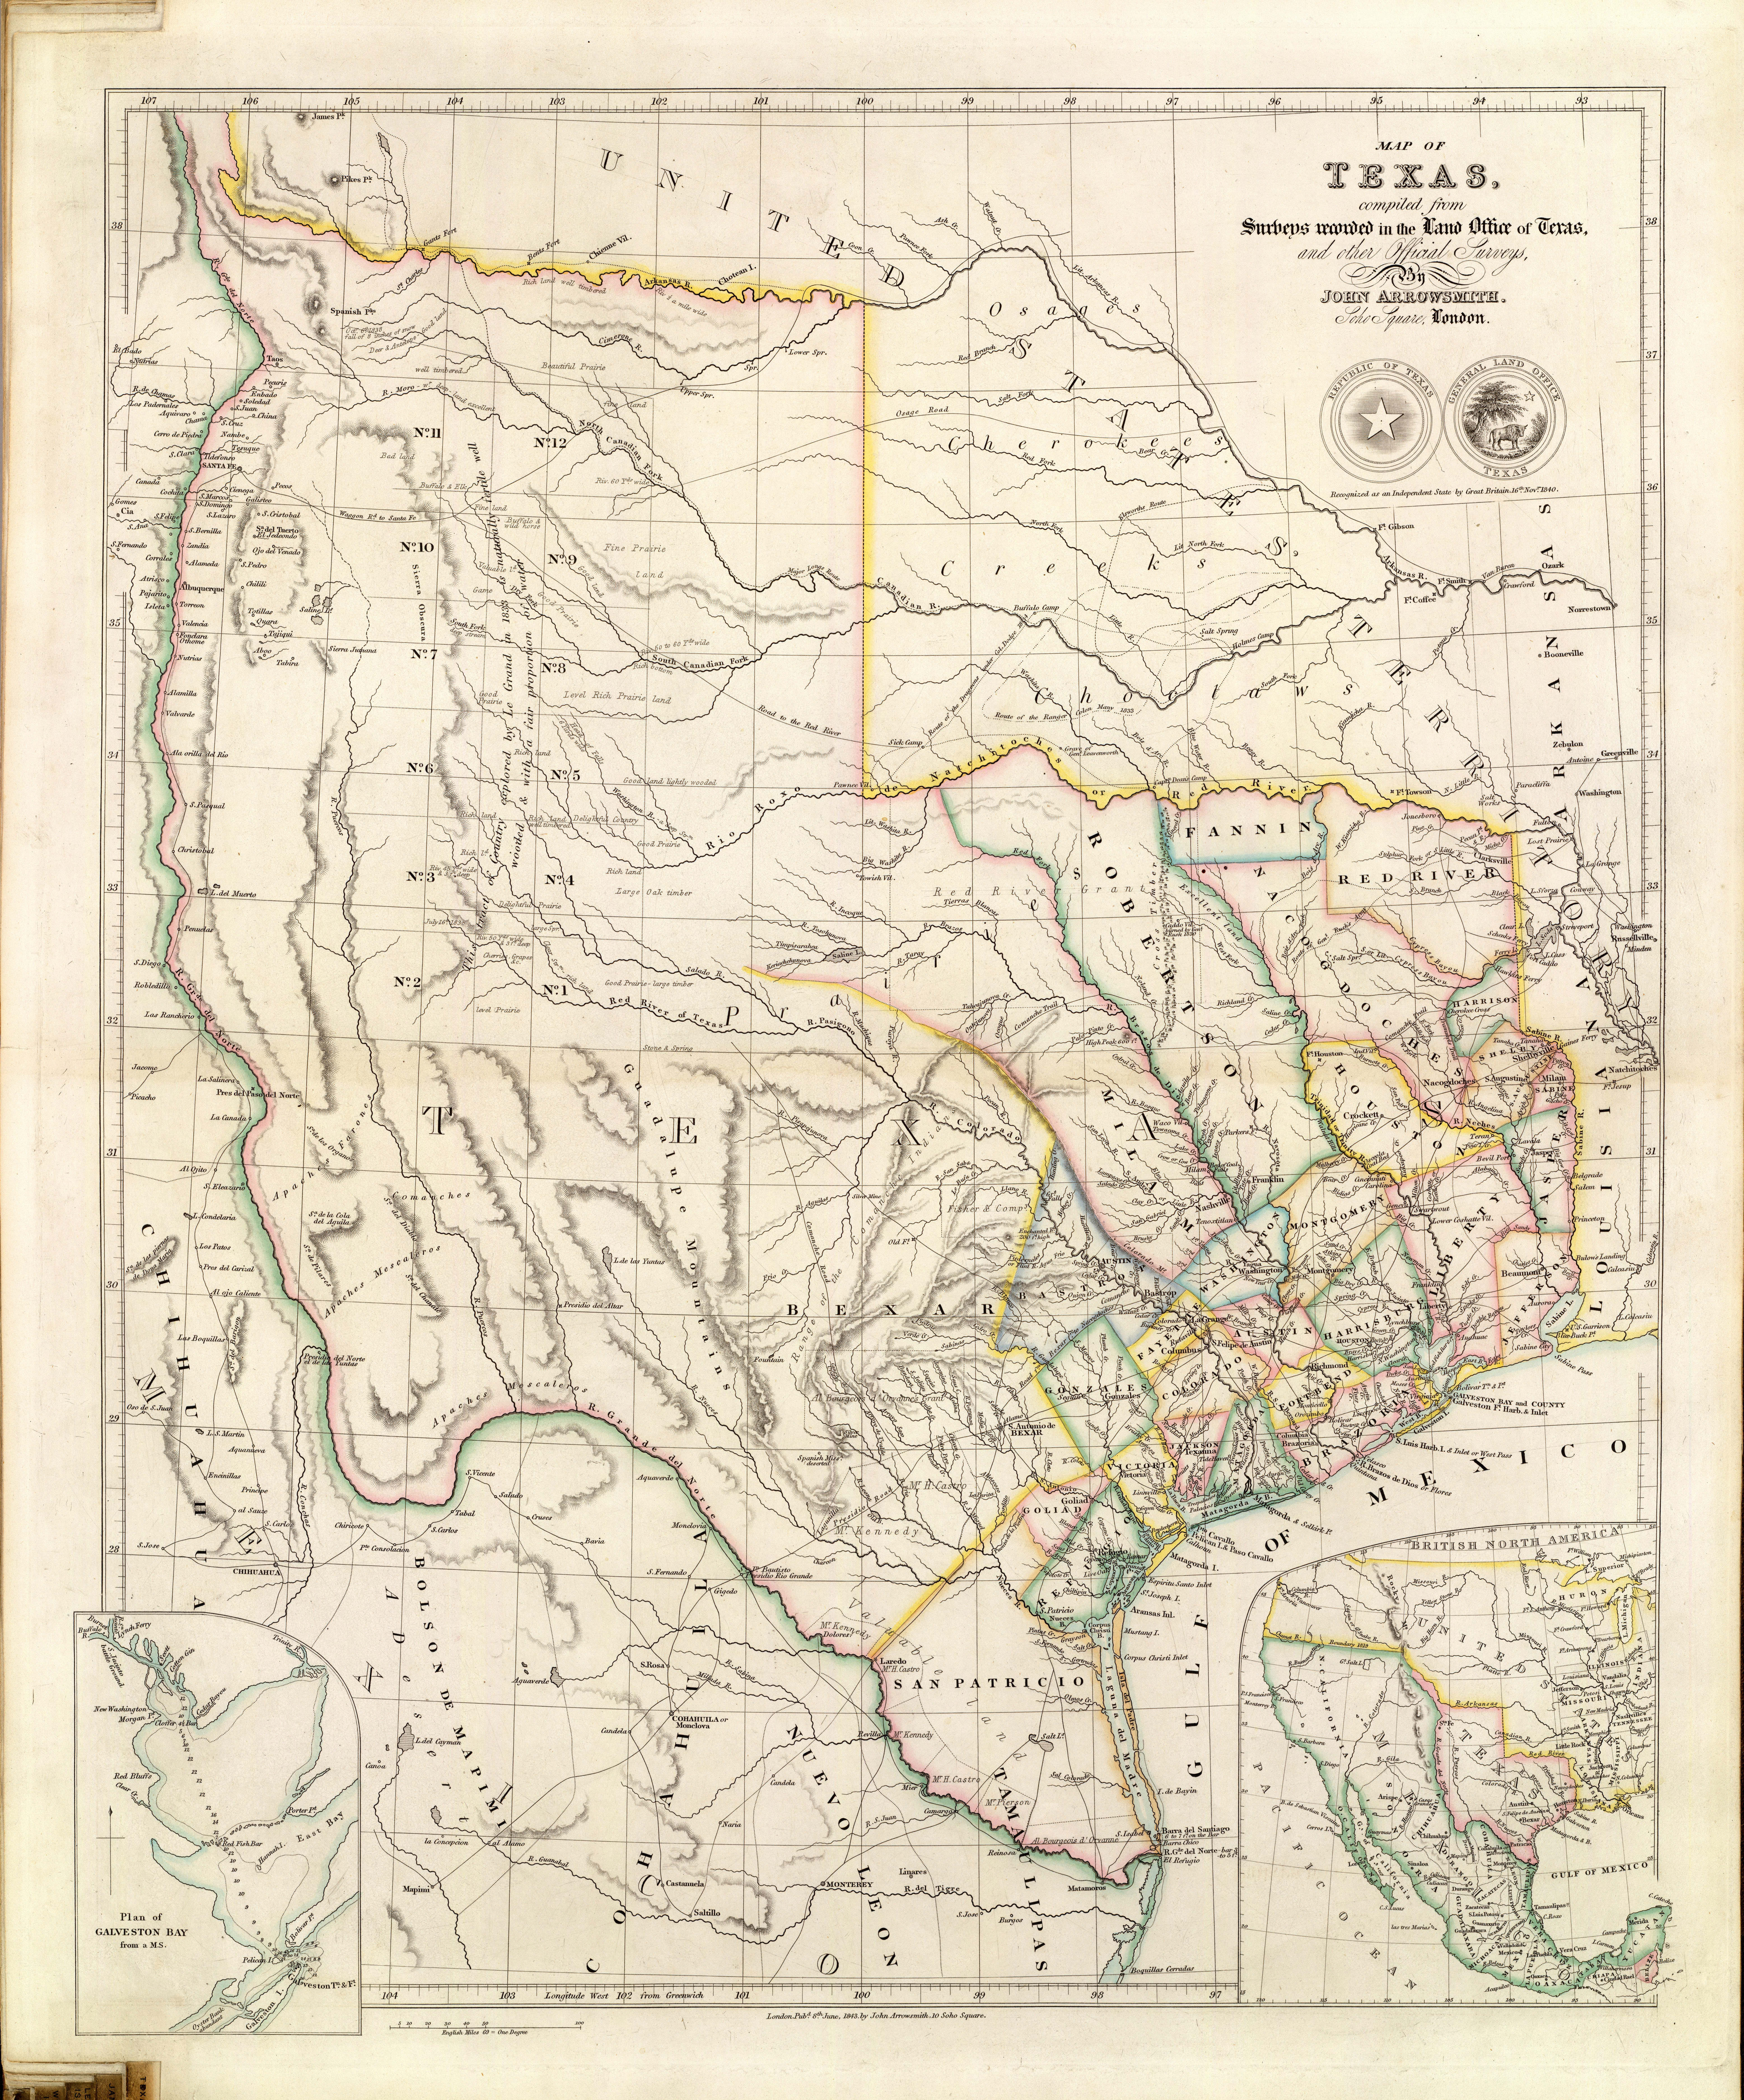 Imagining Texas: An Historical Journey With Maps | The History Center